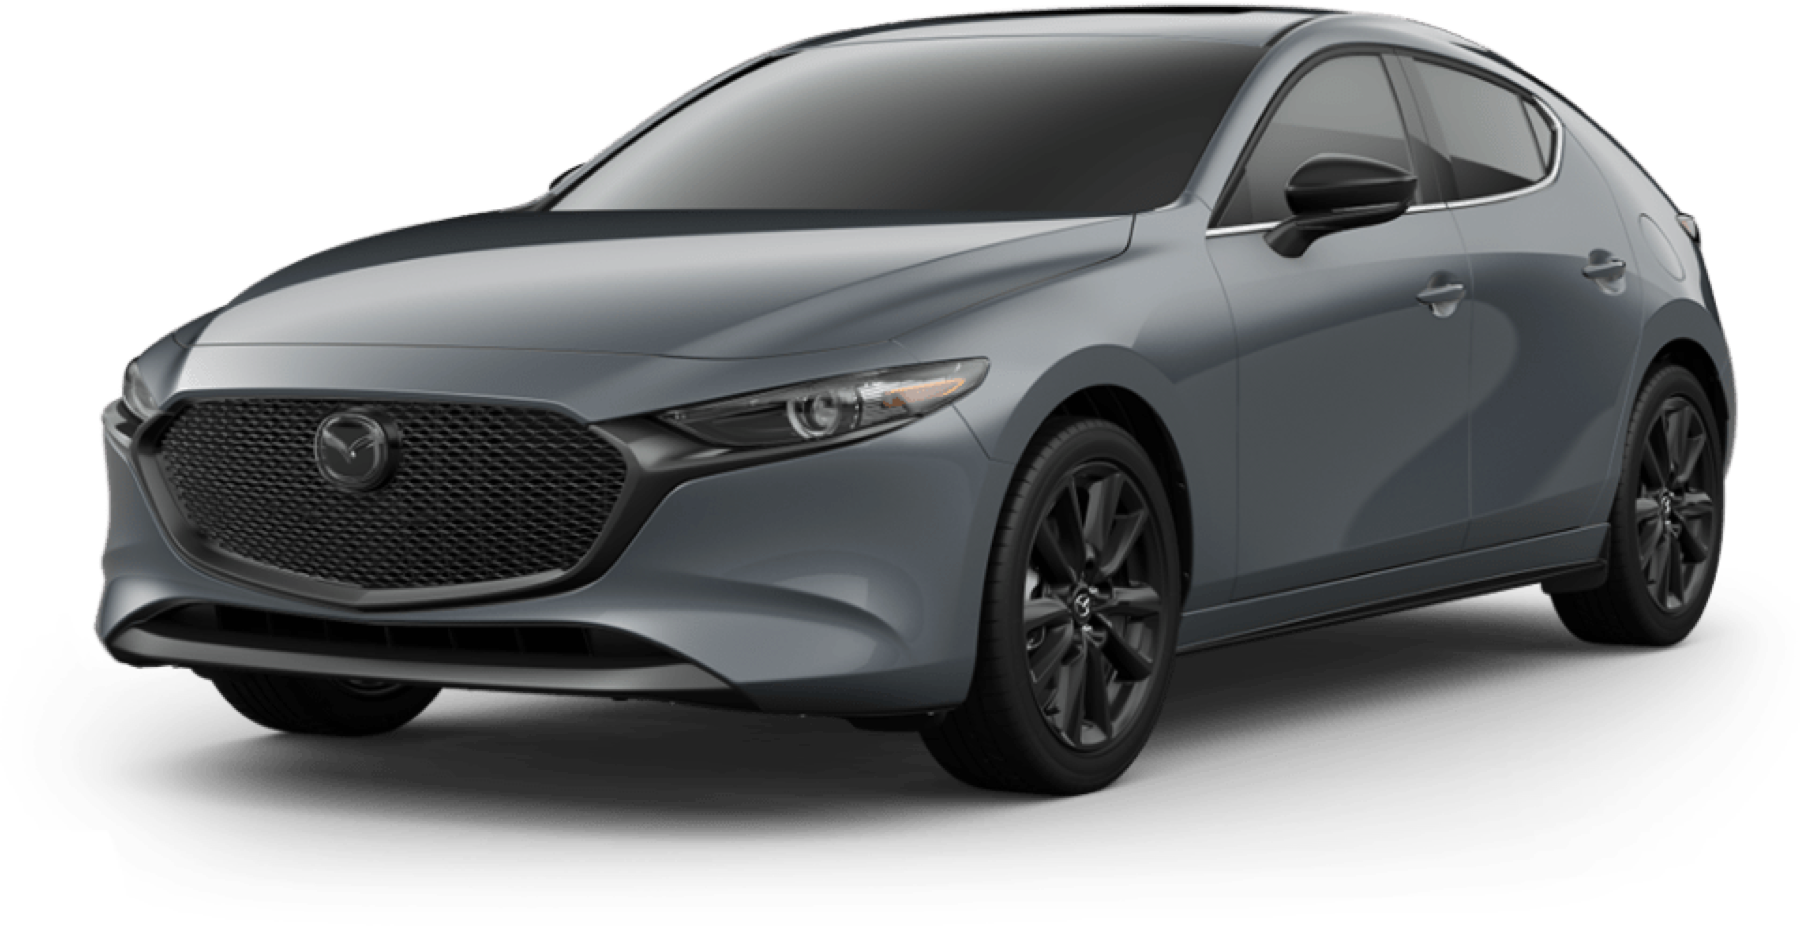 2021 Mazda3 Hatchback, Polymetal Gray Metallic